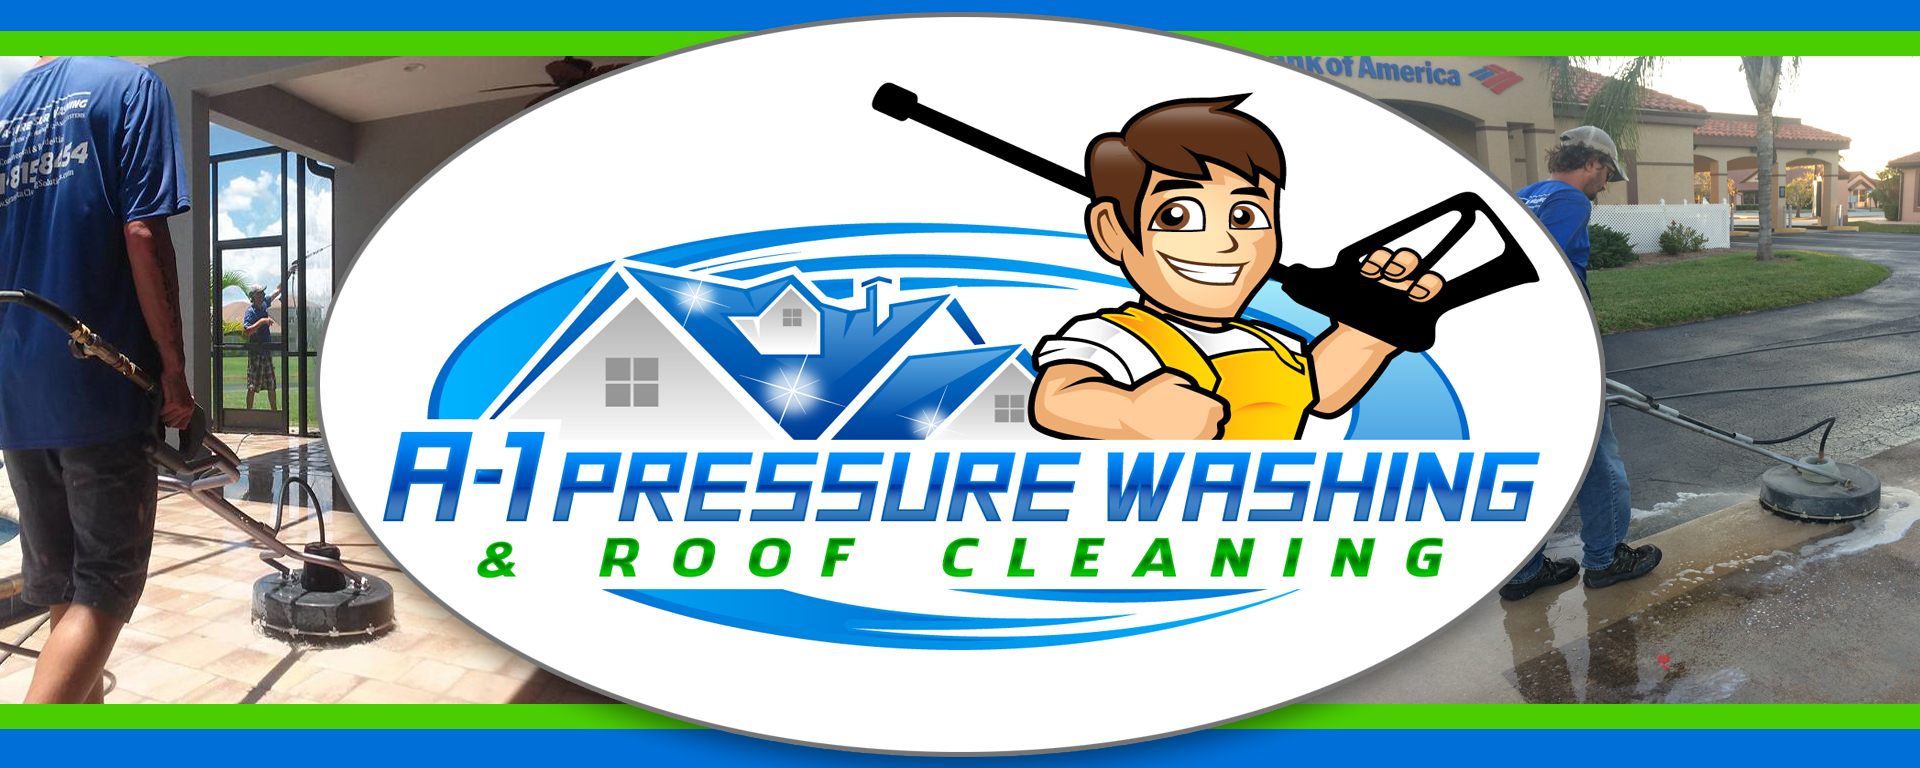 A-1 Pressure Washing & Roof Cleaning Company logo